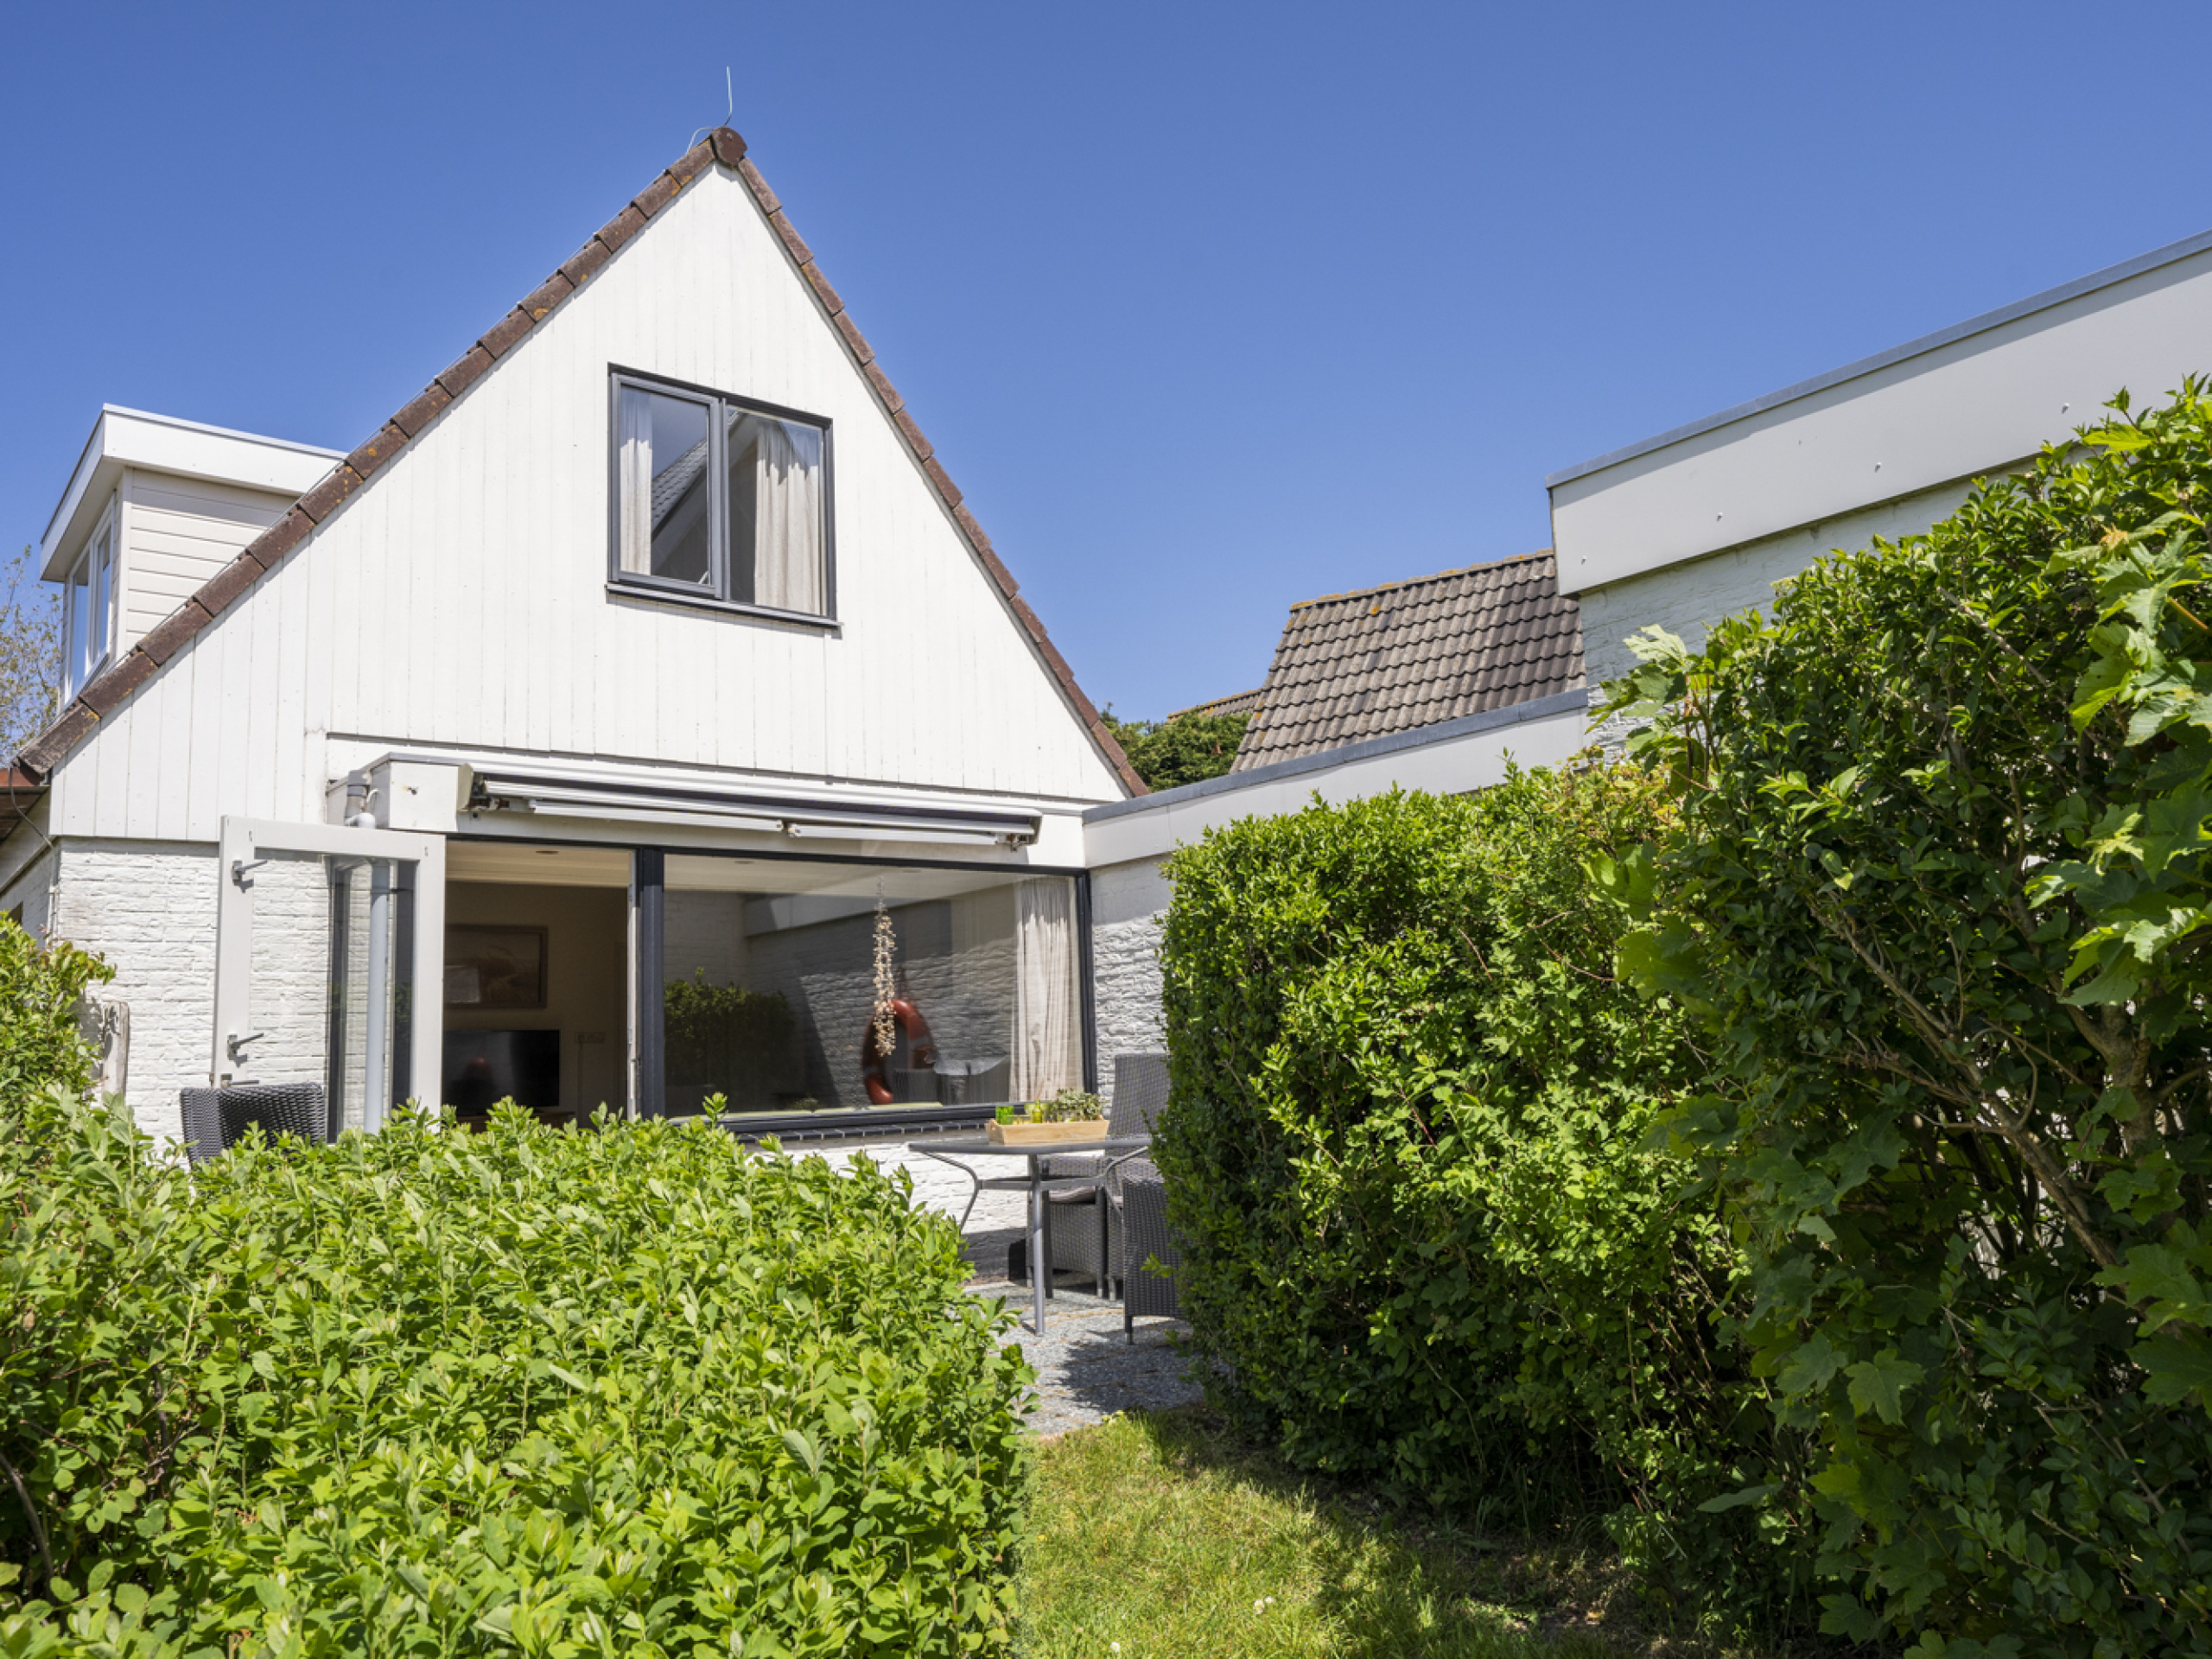 Unwind at this lovely holiday home in ideal location in De Koog